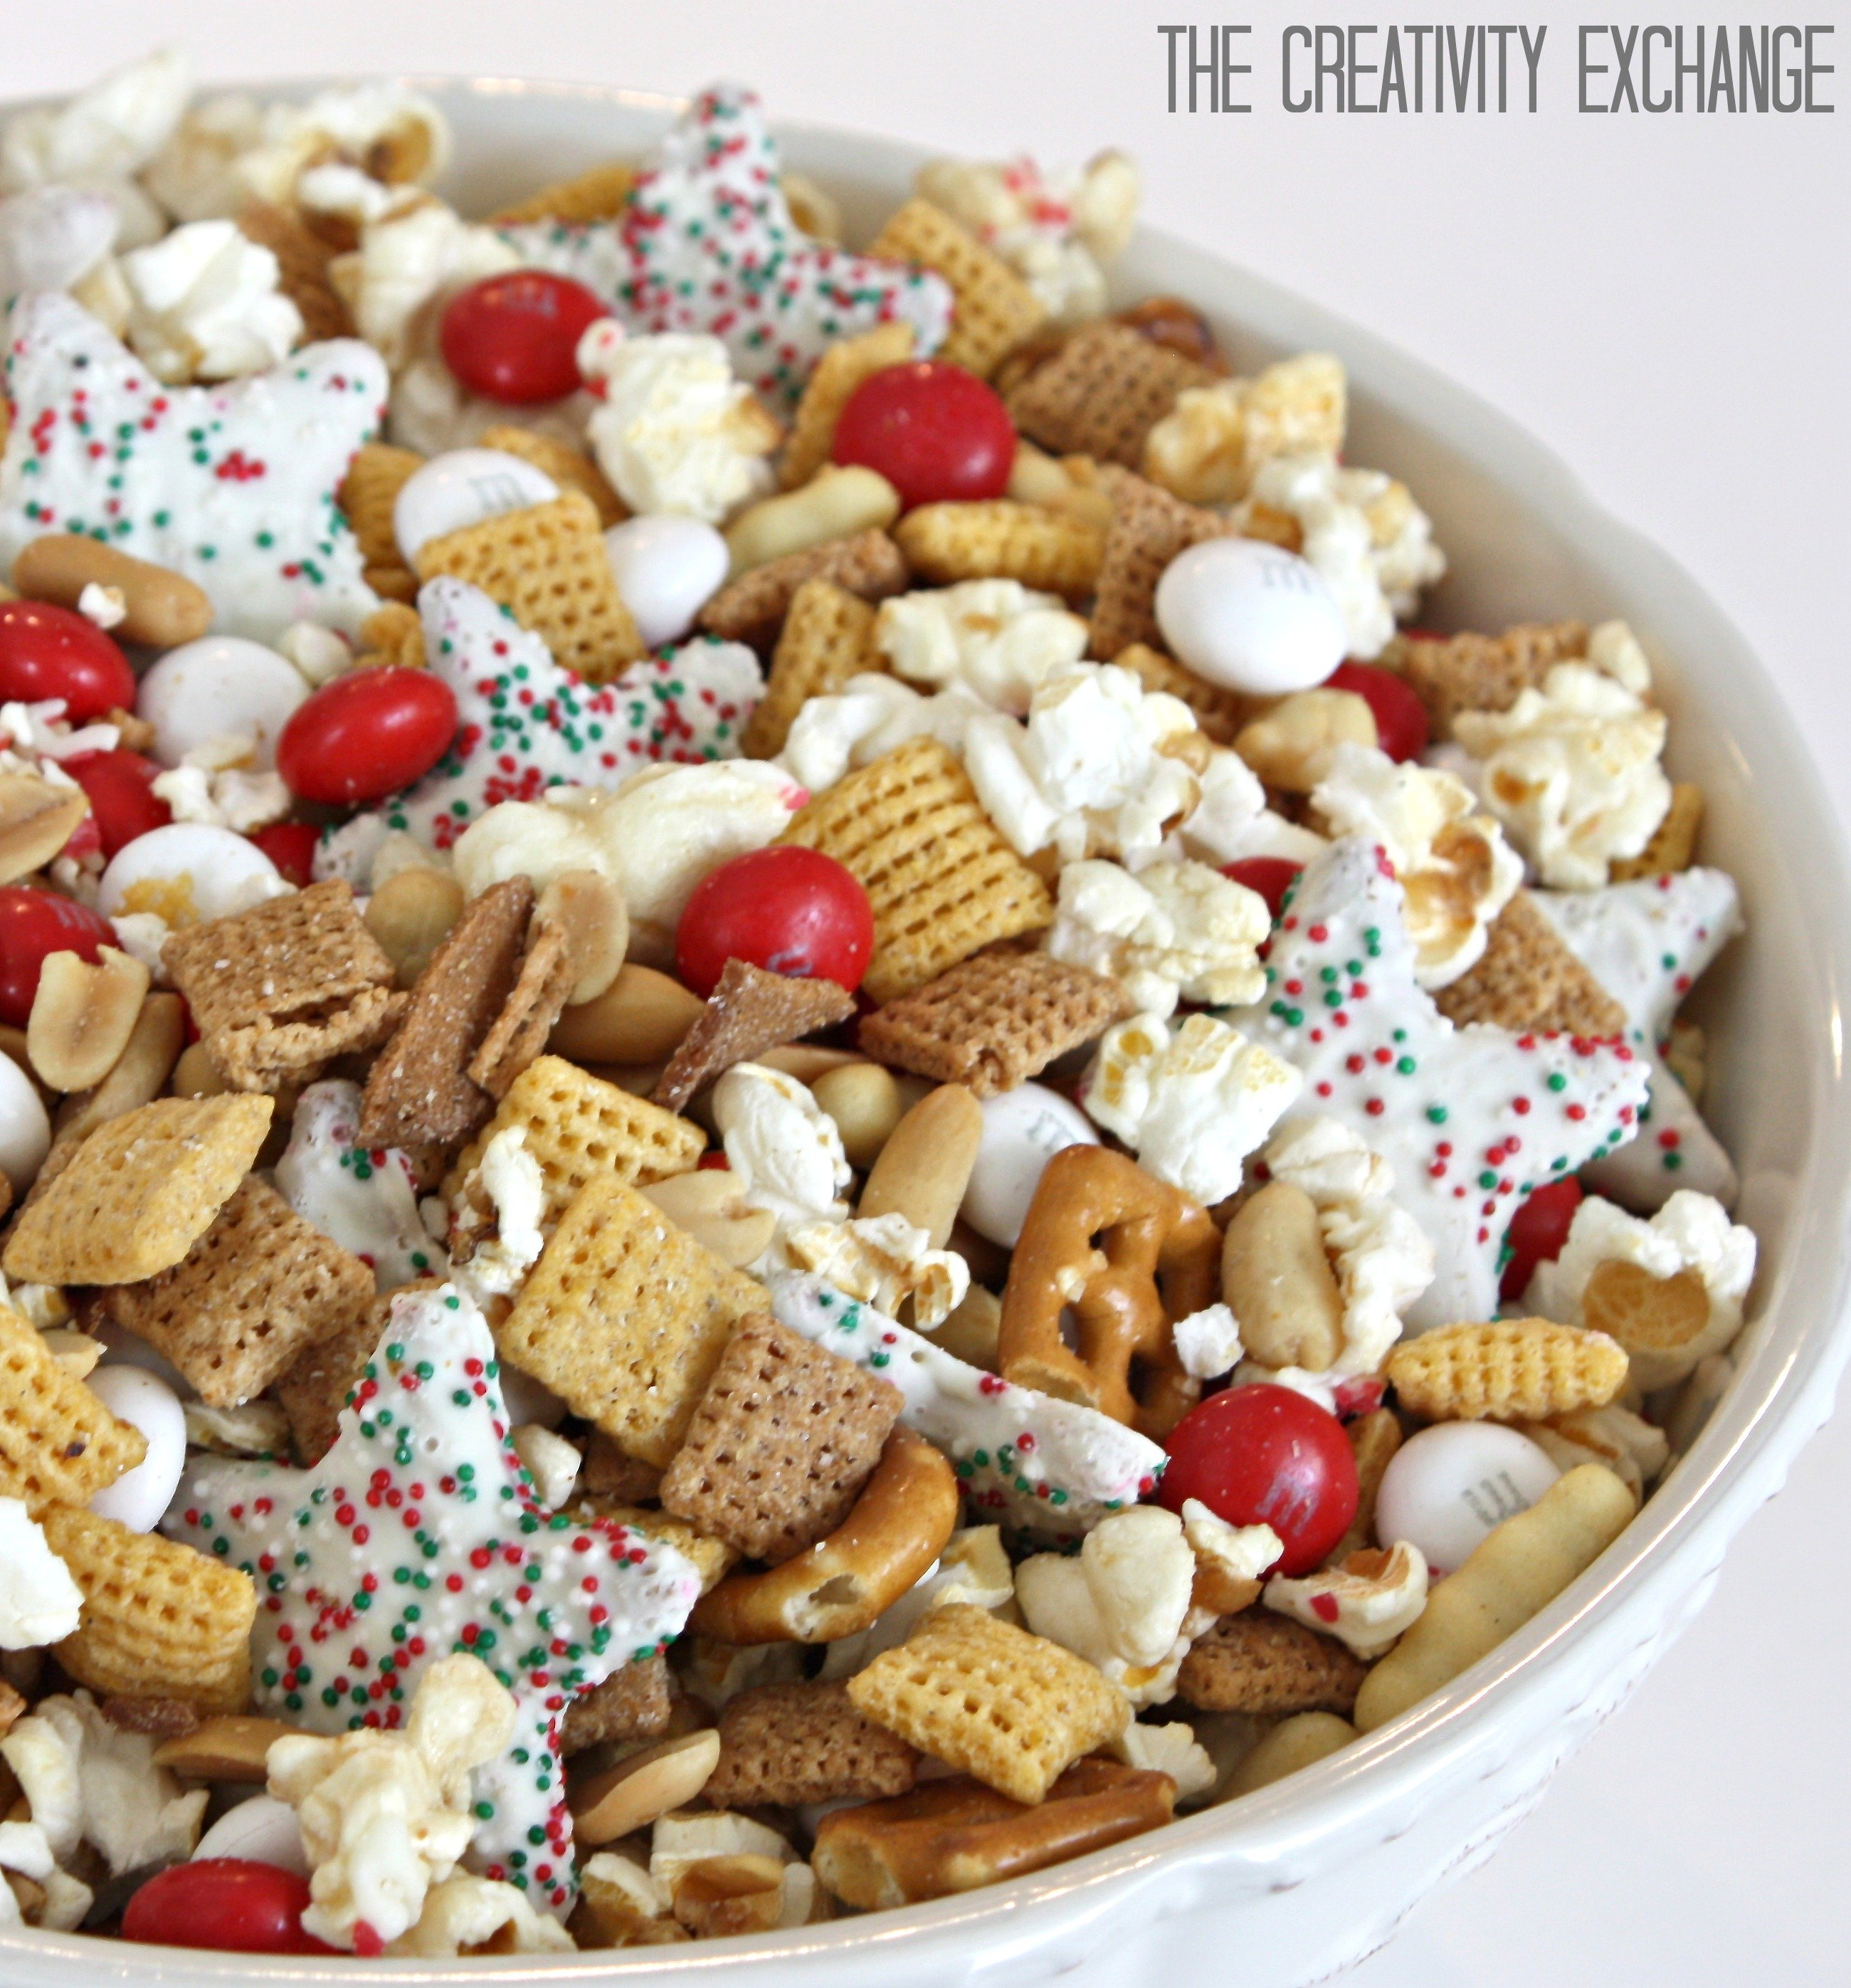 51 Best Trail Food And Cooking Ideas Images On Pinterest: Favorite Christmas Snacks And Printable Gift Tag